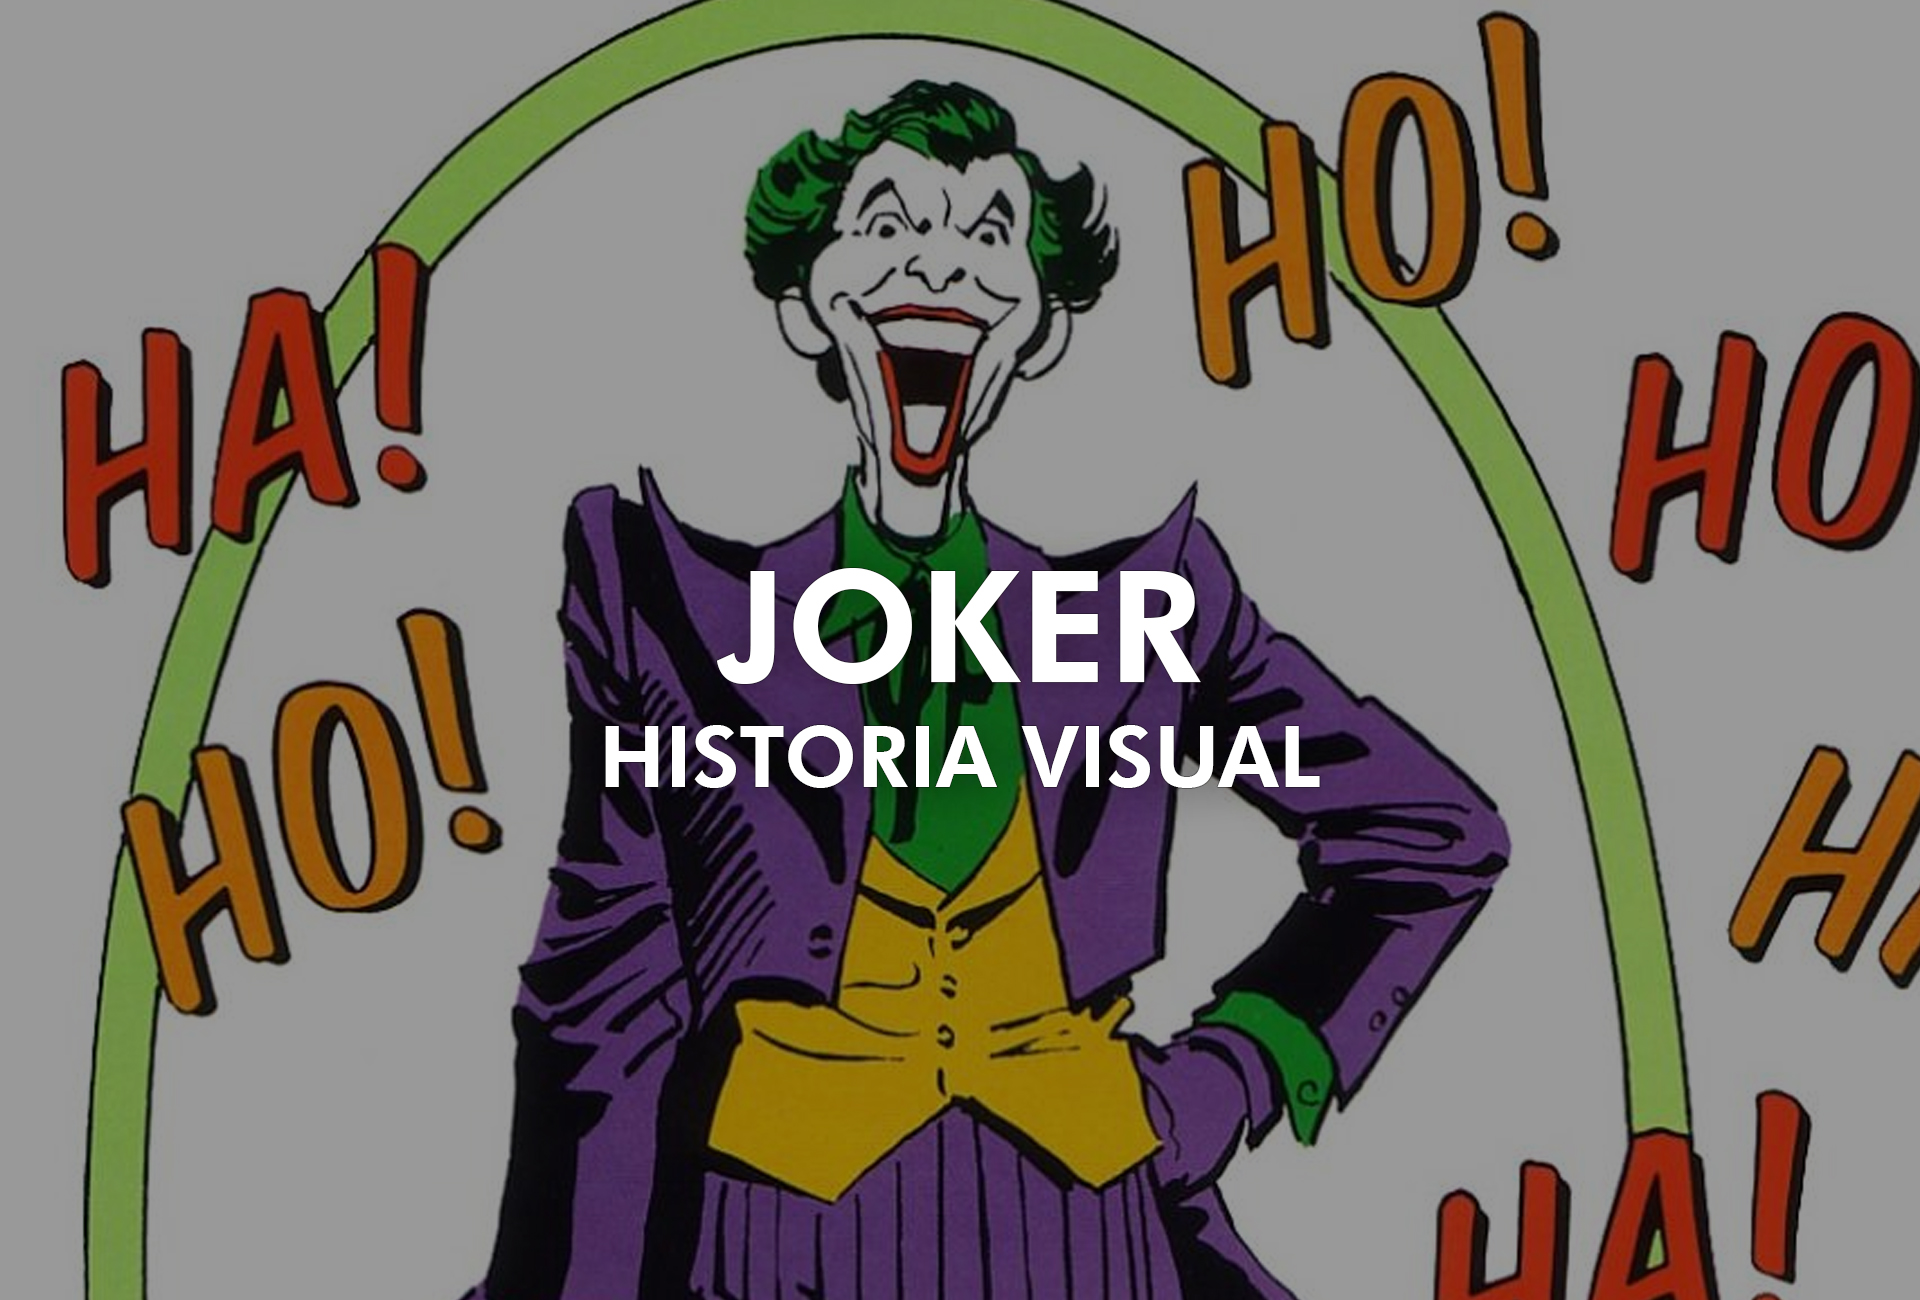 Joker – Historia visual